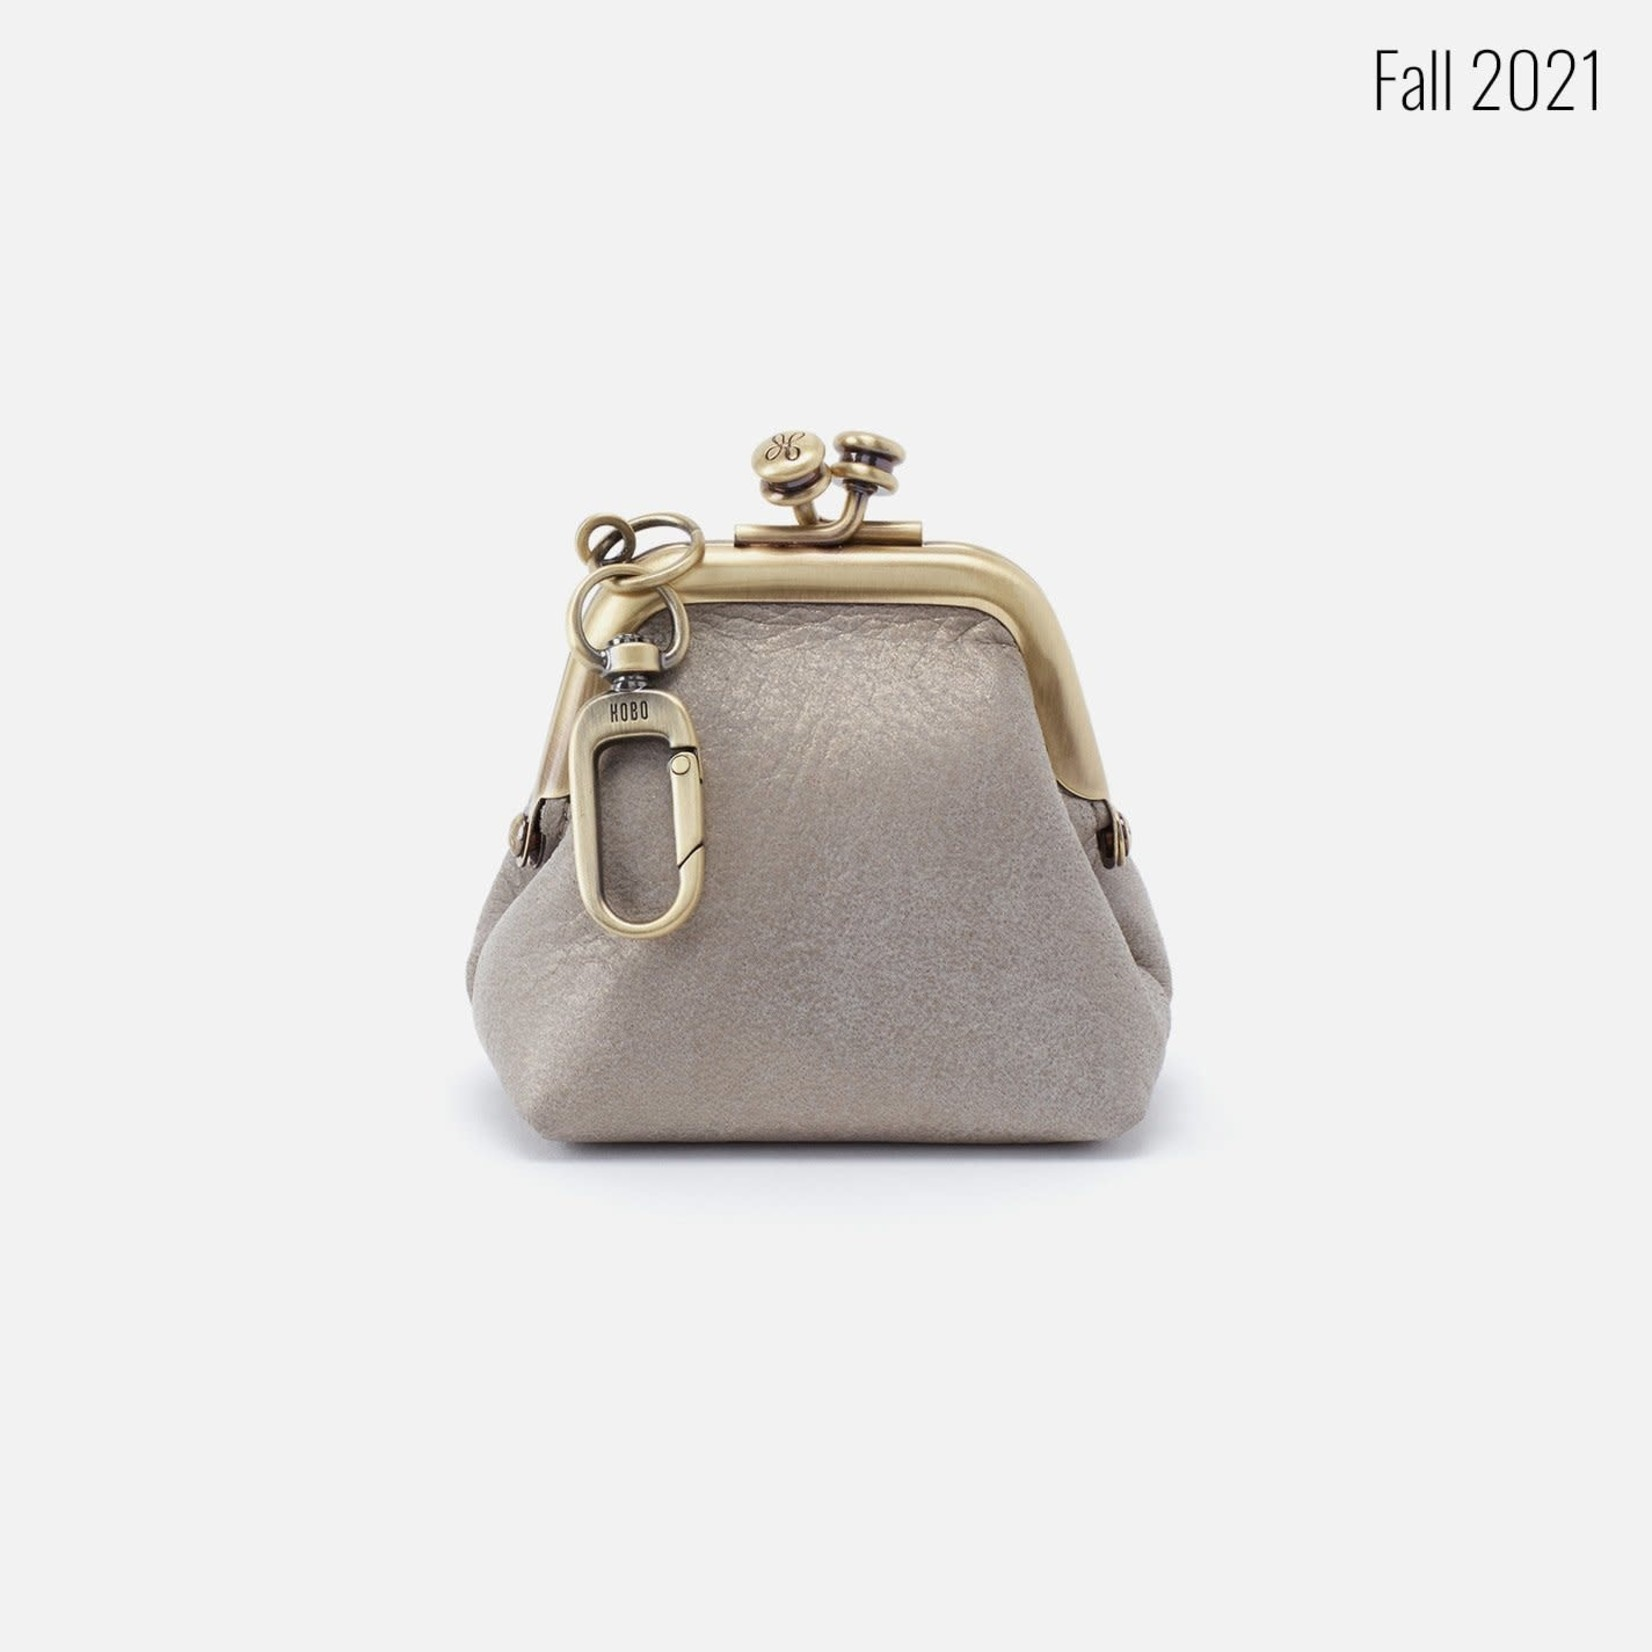 HOBO Run Granite Gold Soft Leather Frame Pouch